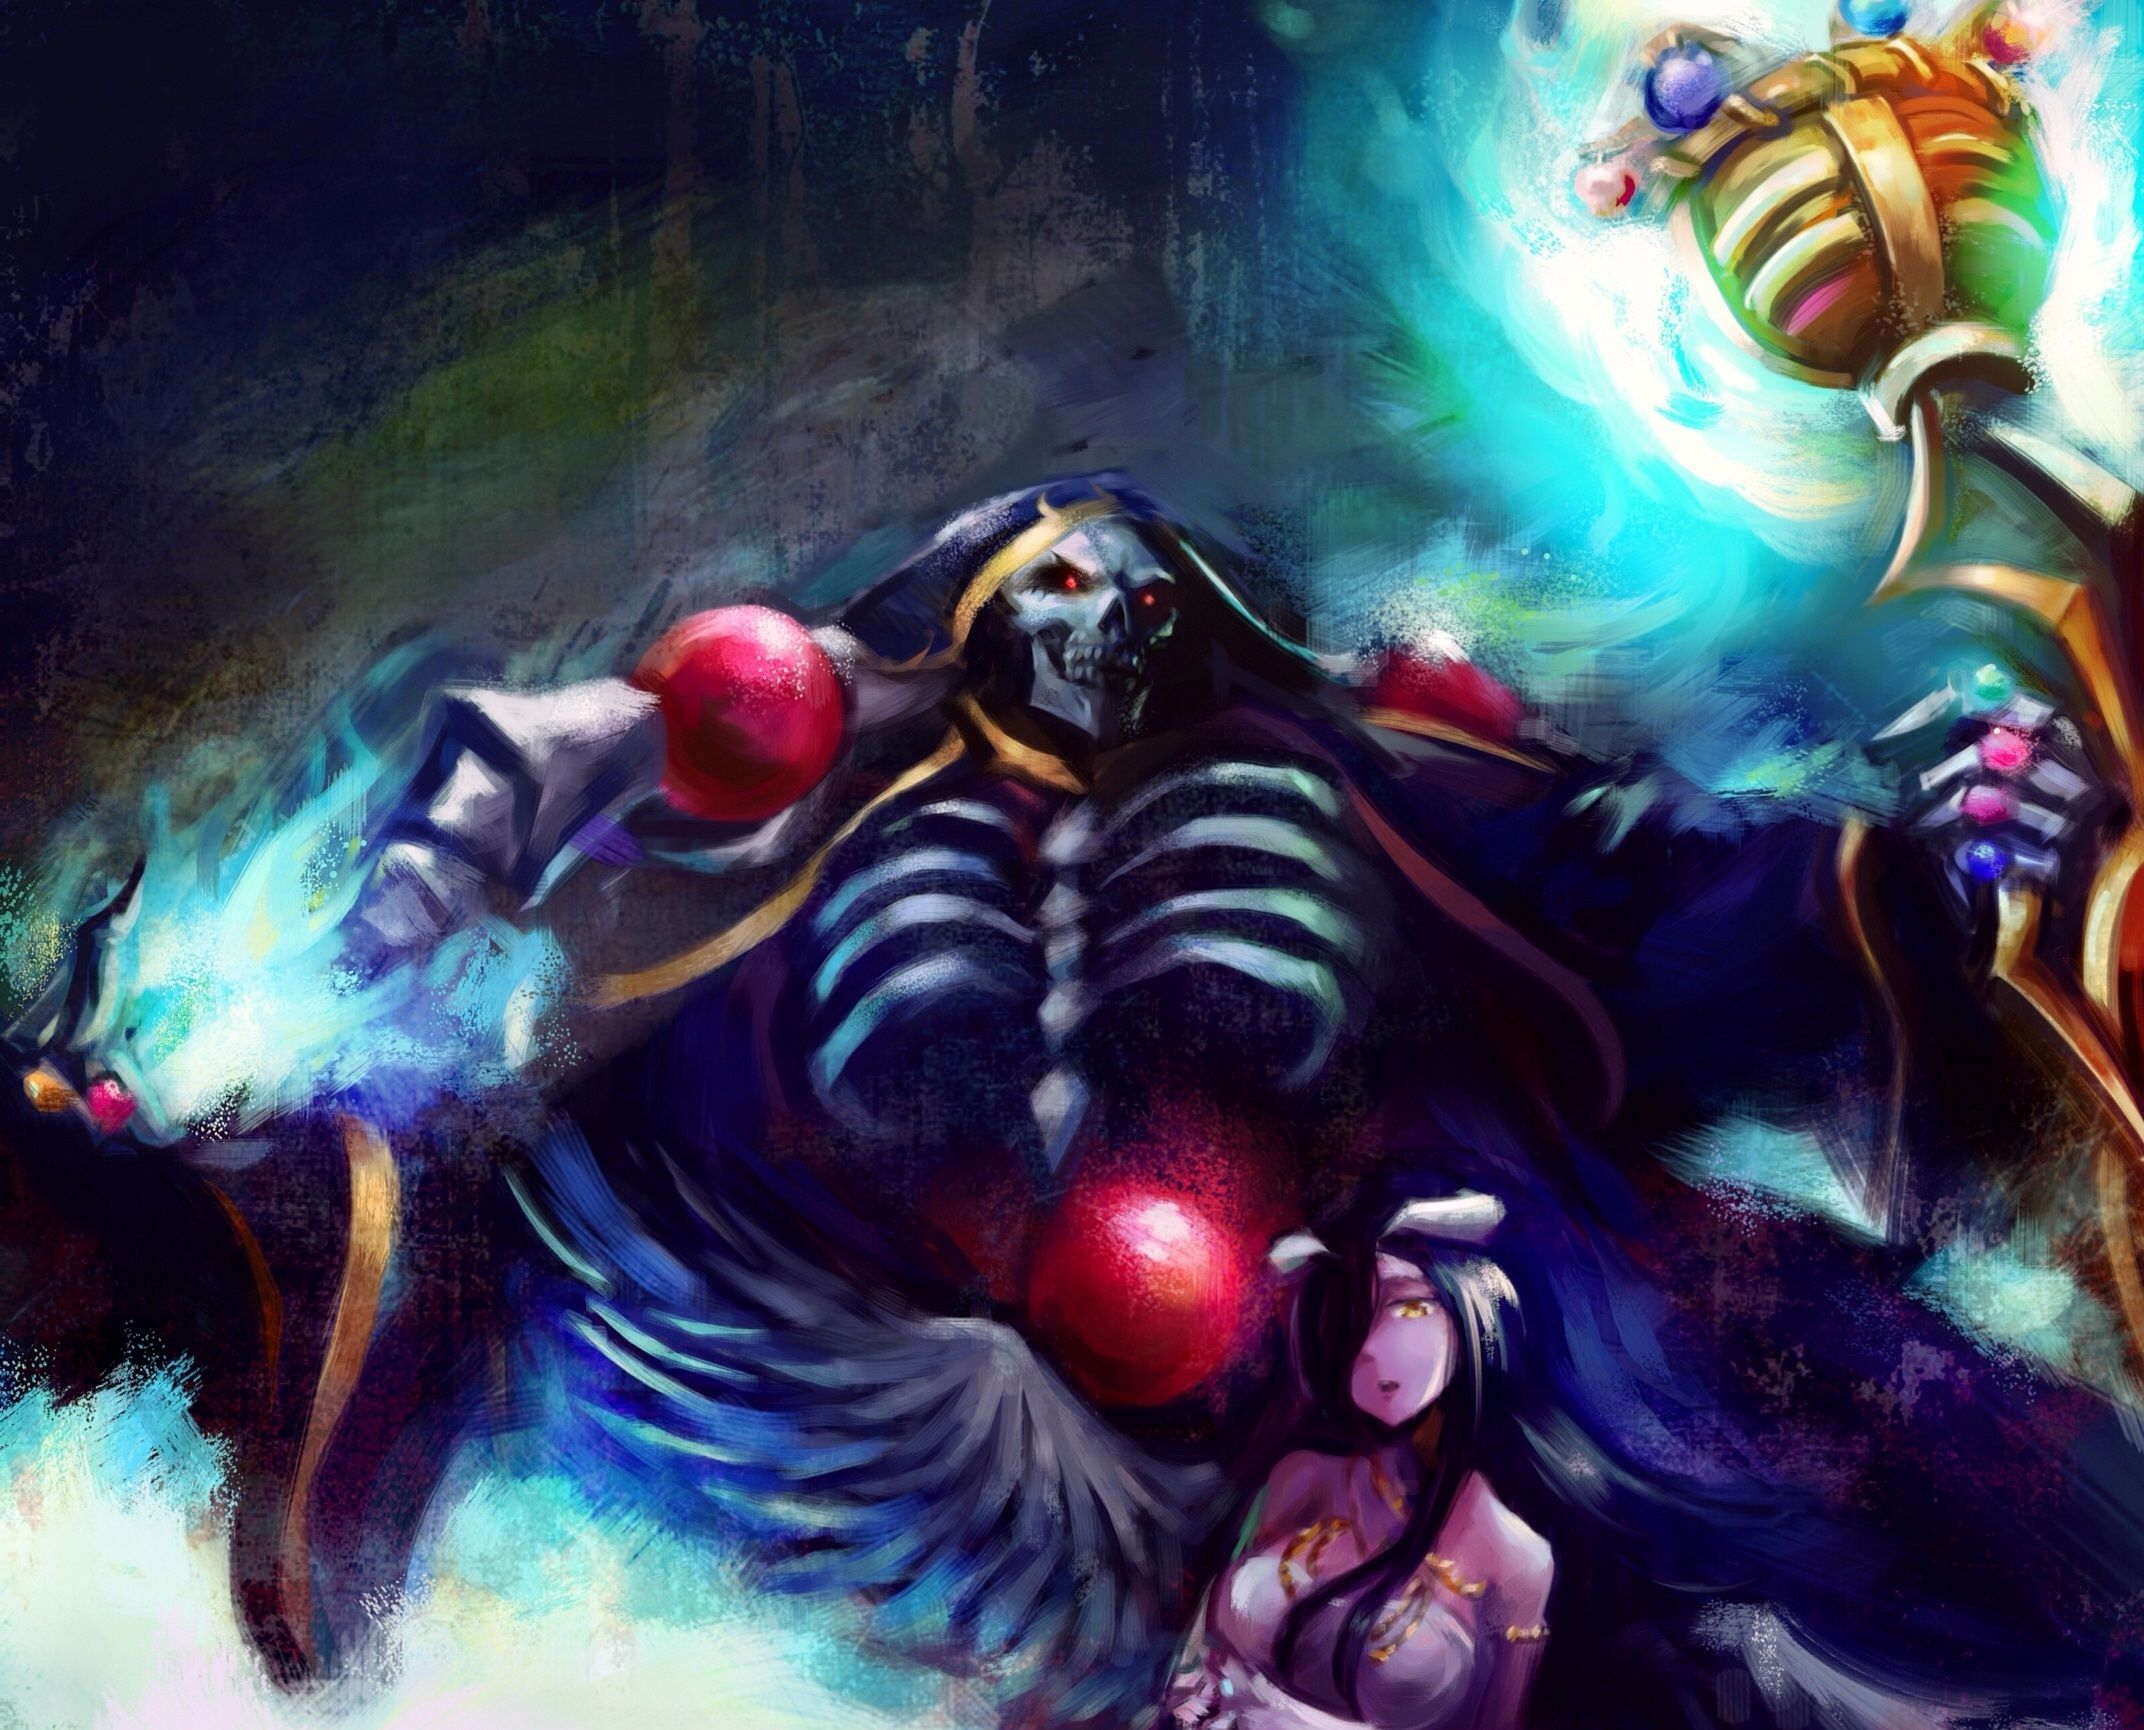 Ainz Ooal Gown Wallpapers Top Free Ainz Ooal Gown Backgrounds Wallpaperaccess